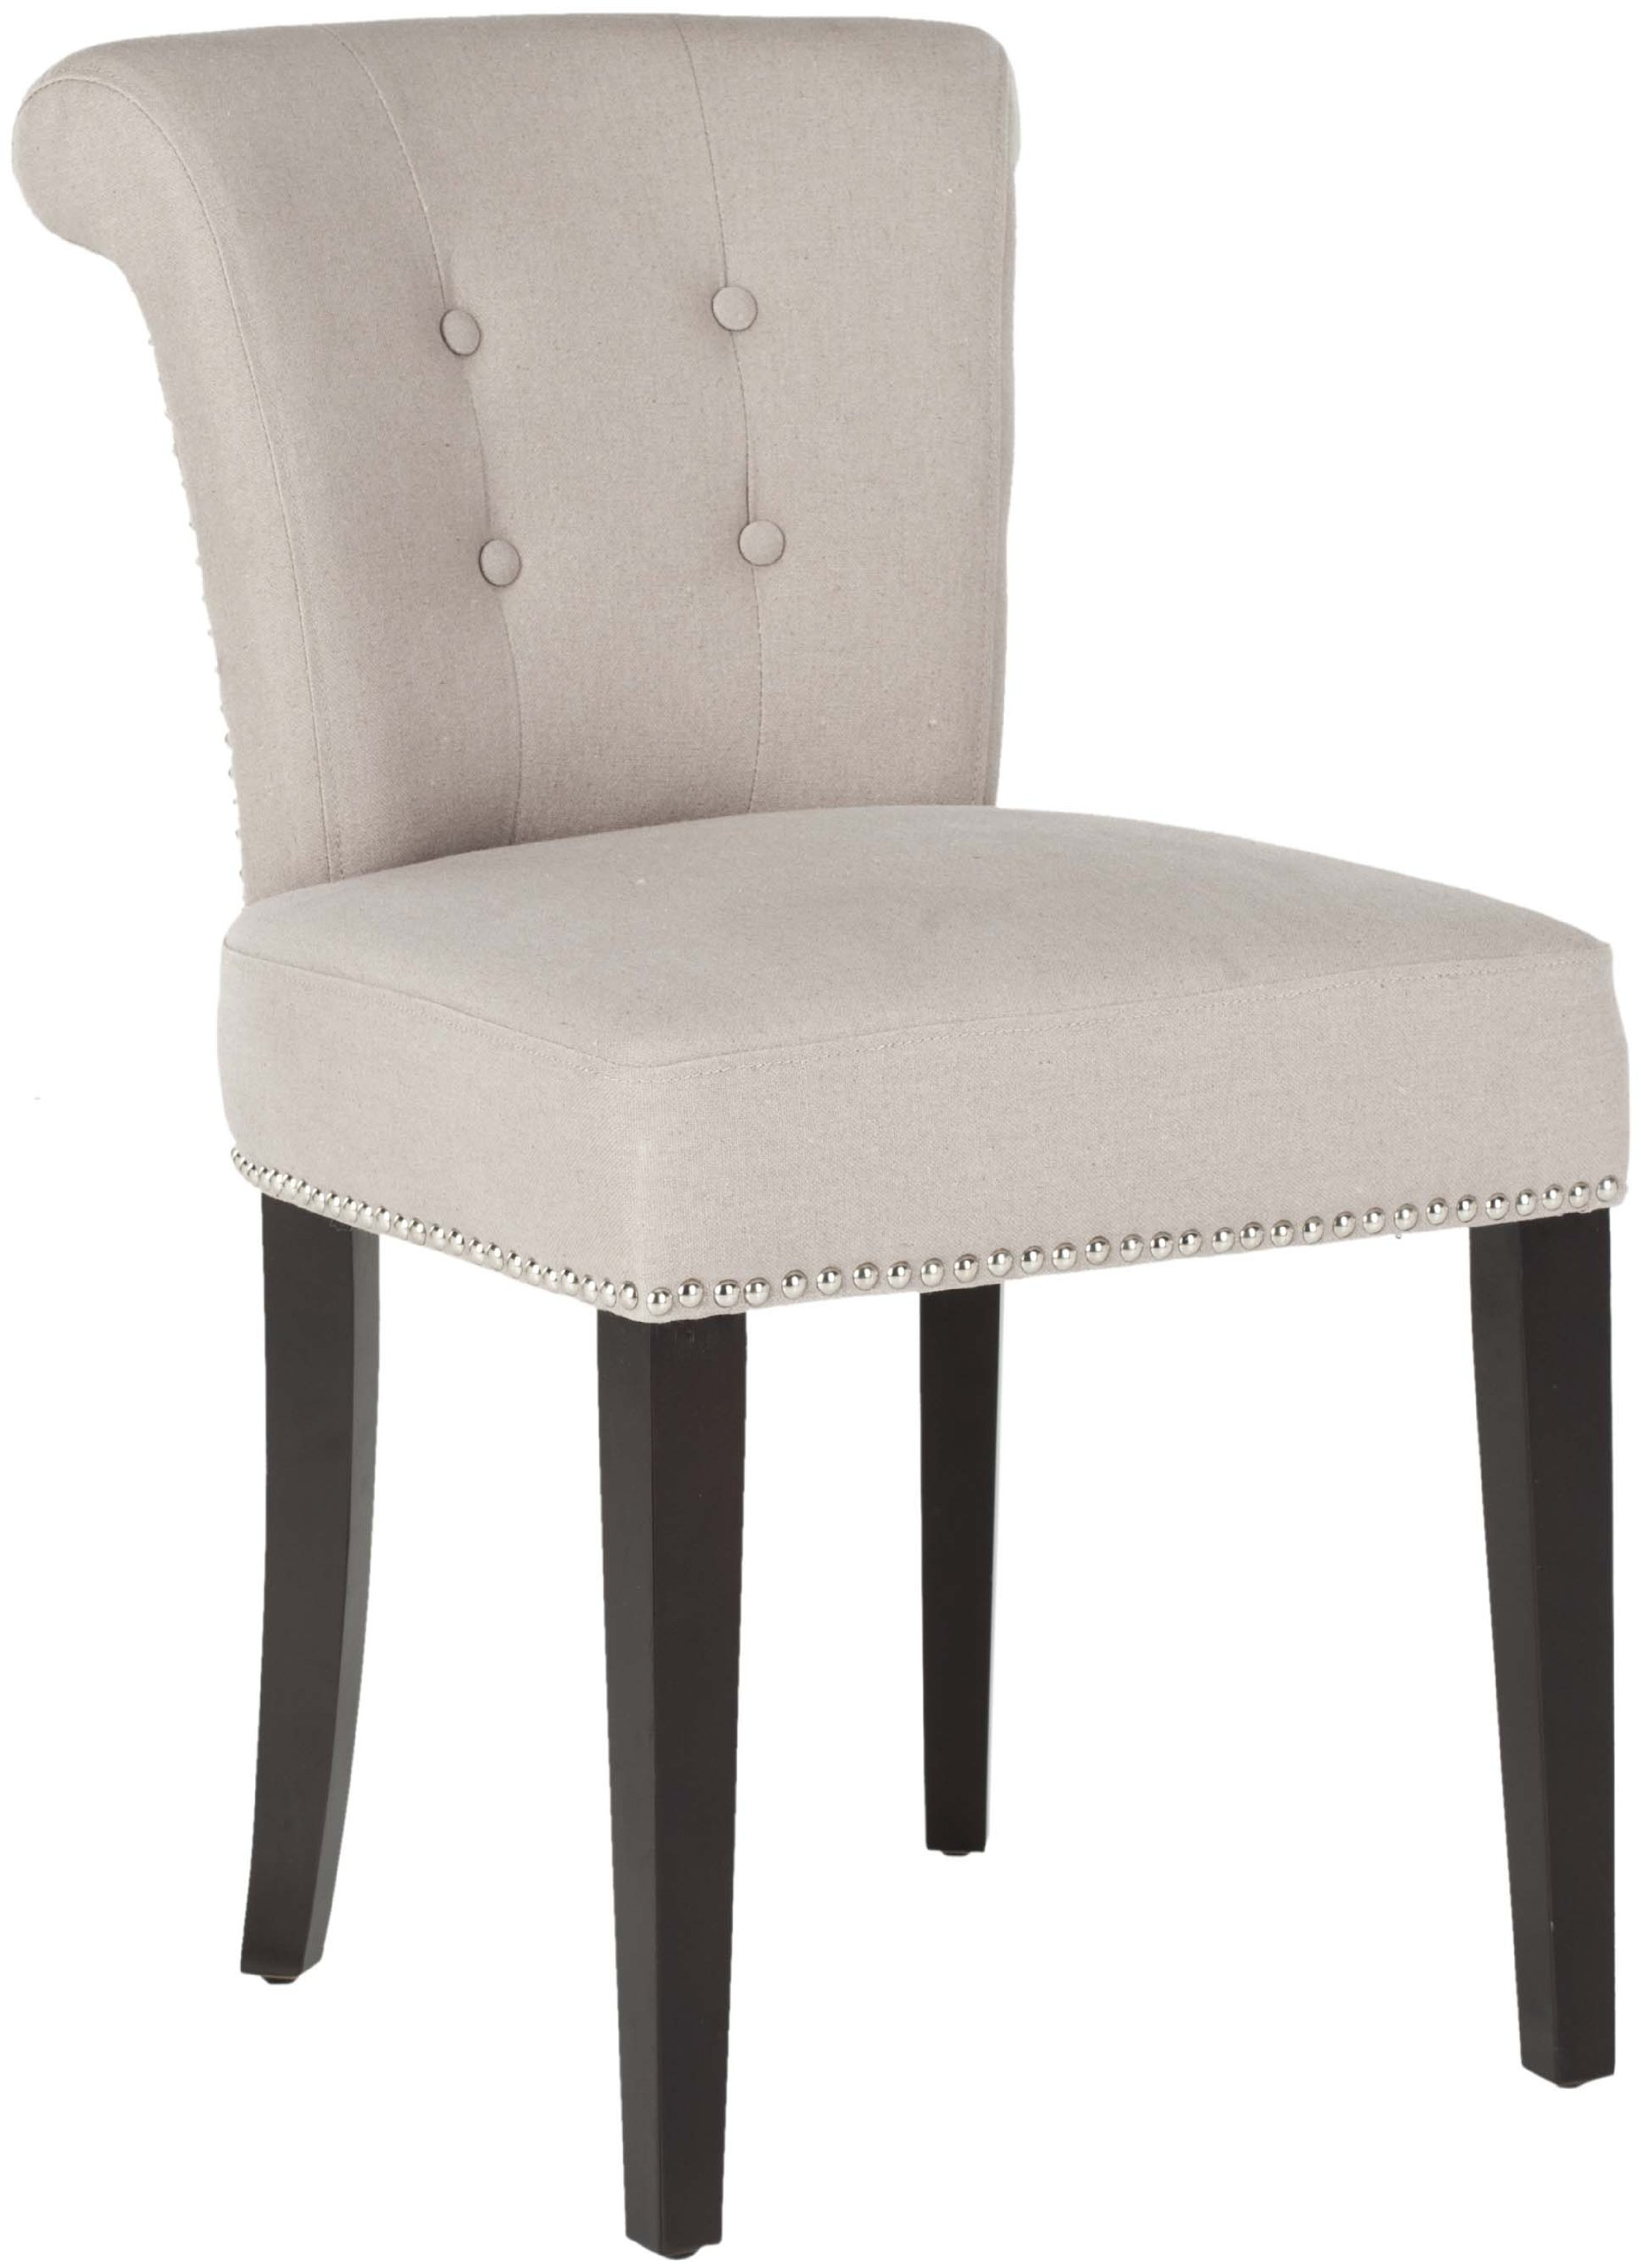 Safavieh Mercer Collection Carol Taupe Linen Ring Dining Chair